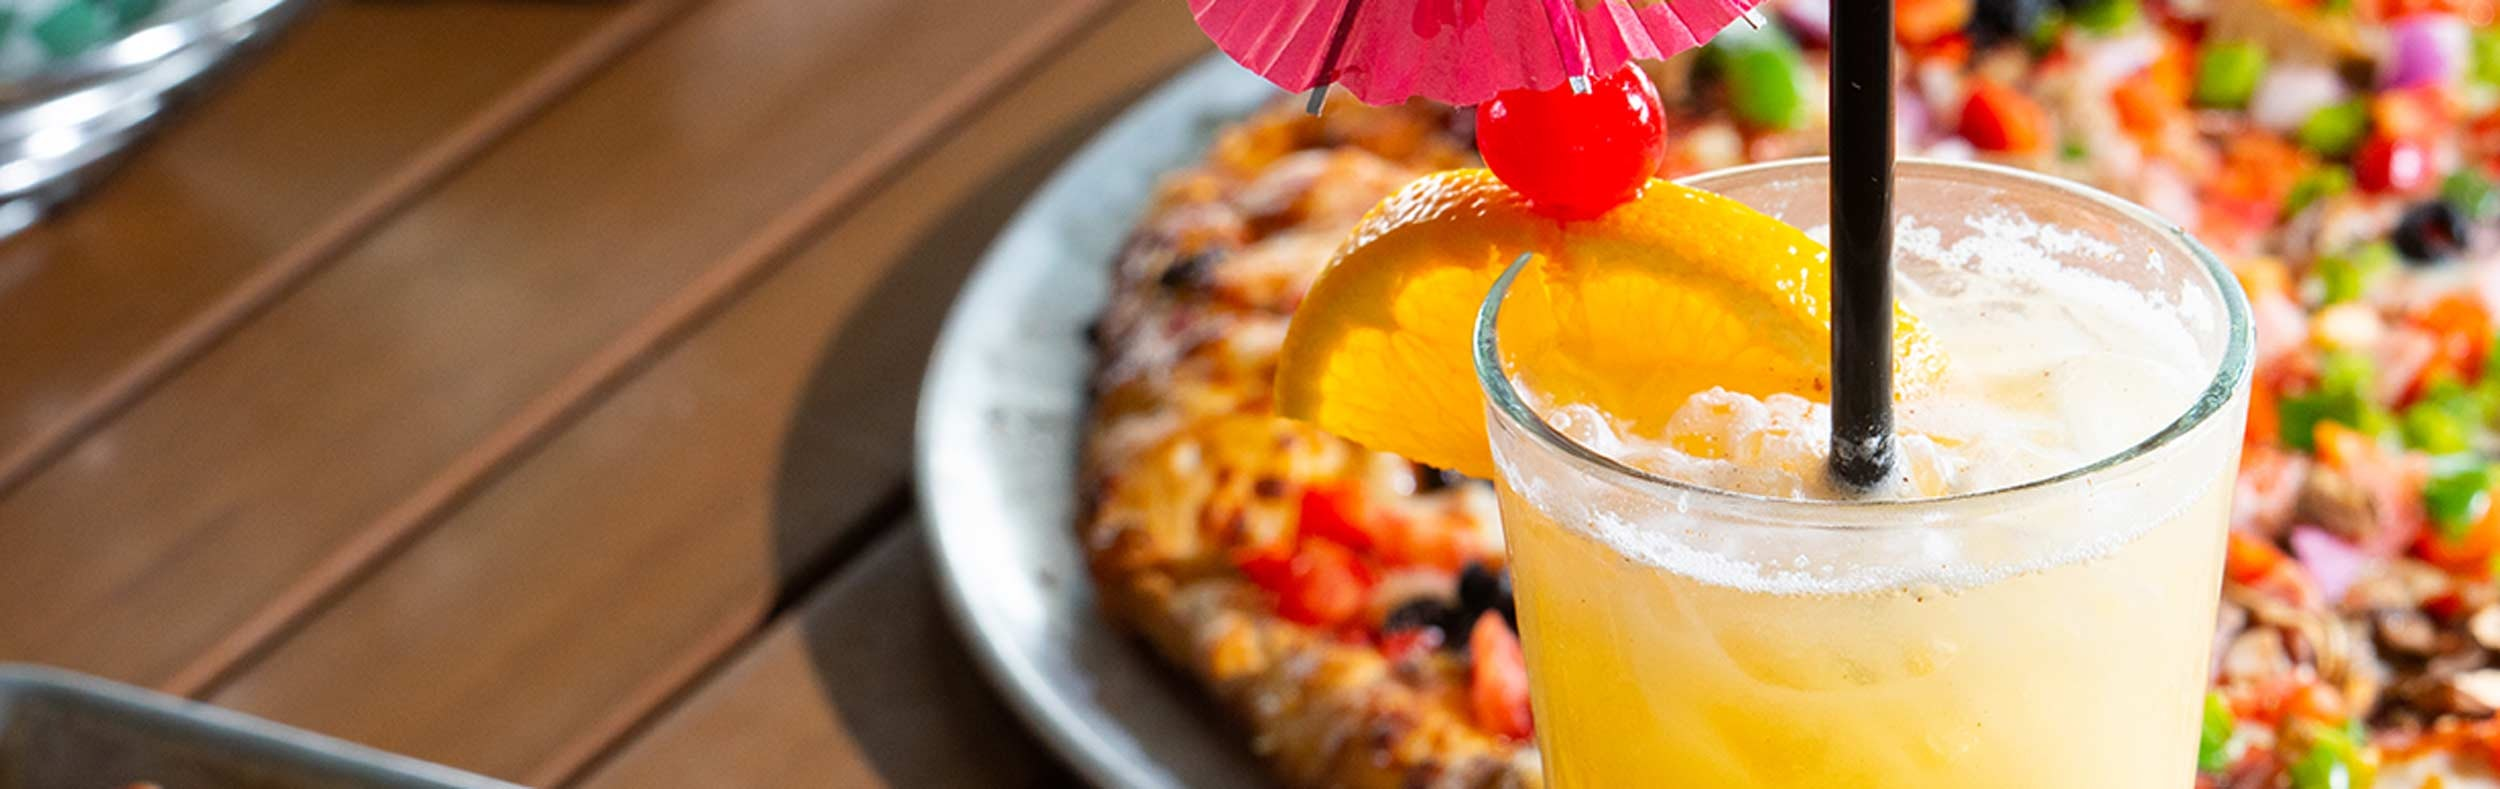 Drink with umbrella and pizza